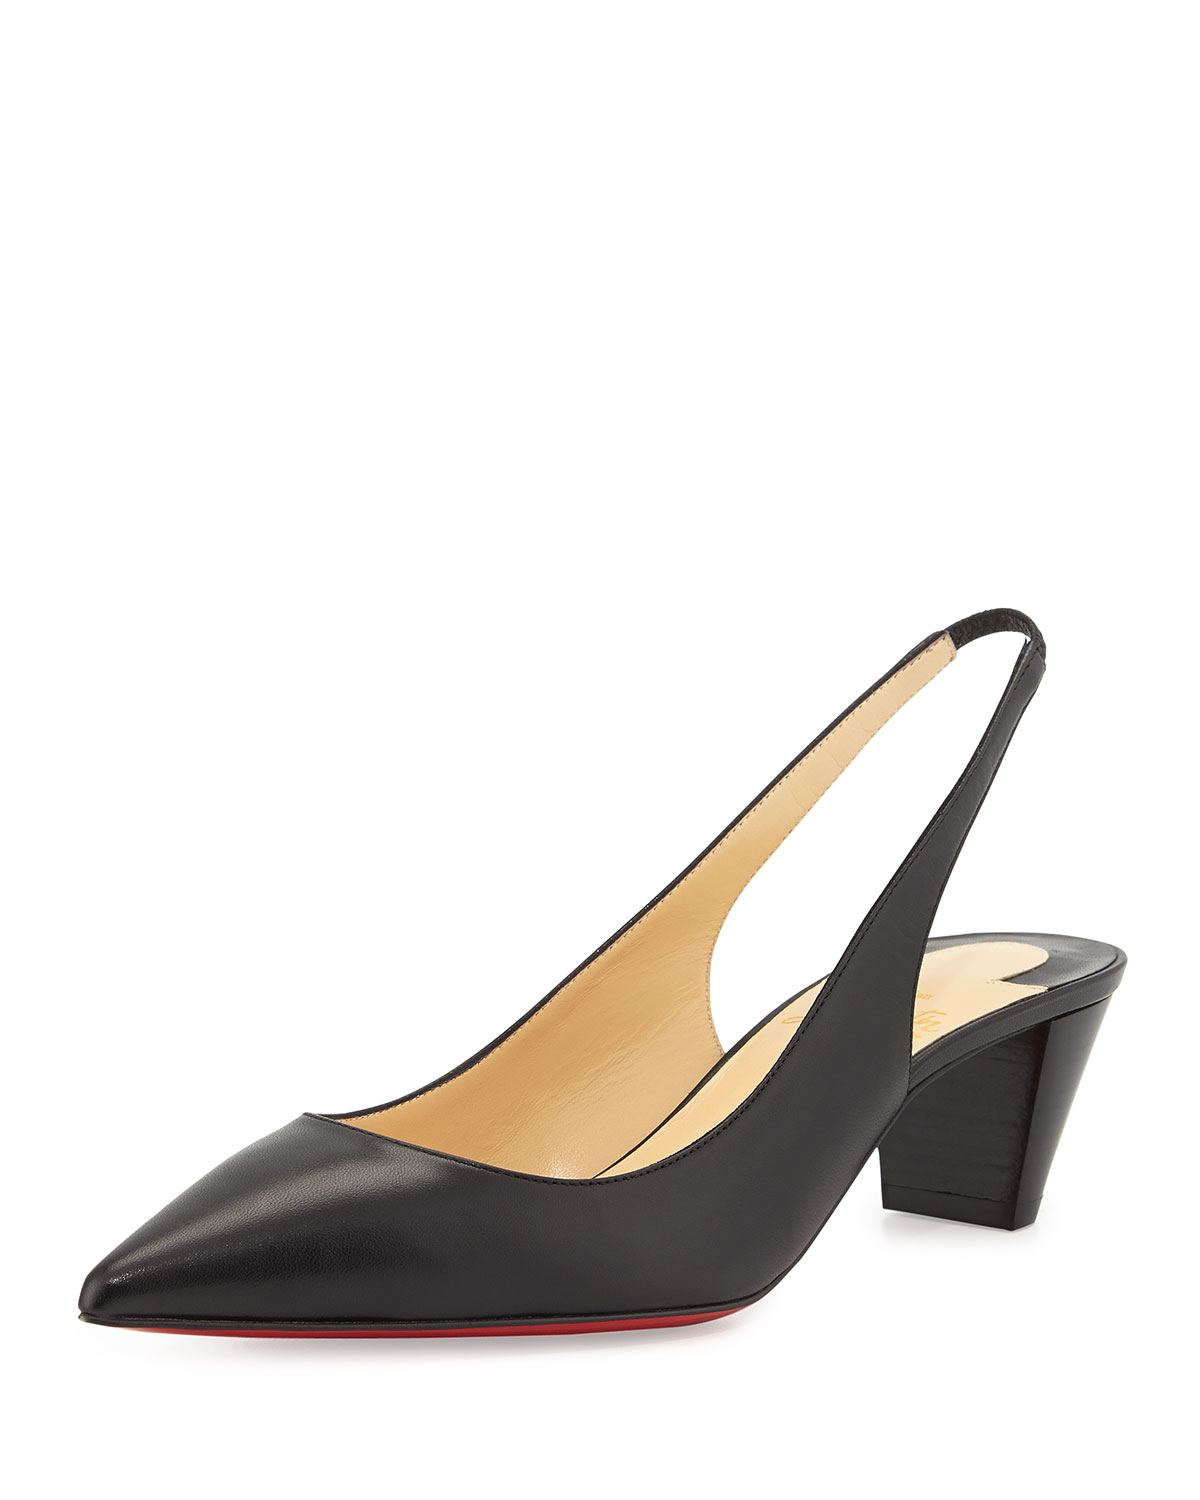 Lyst - Christian louboutin Karelli Point-Toe Low-Heel Red Sole ...